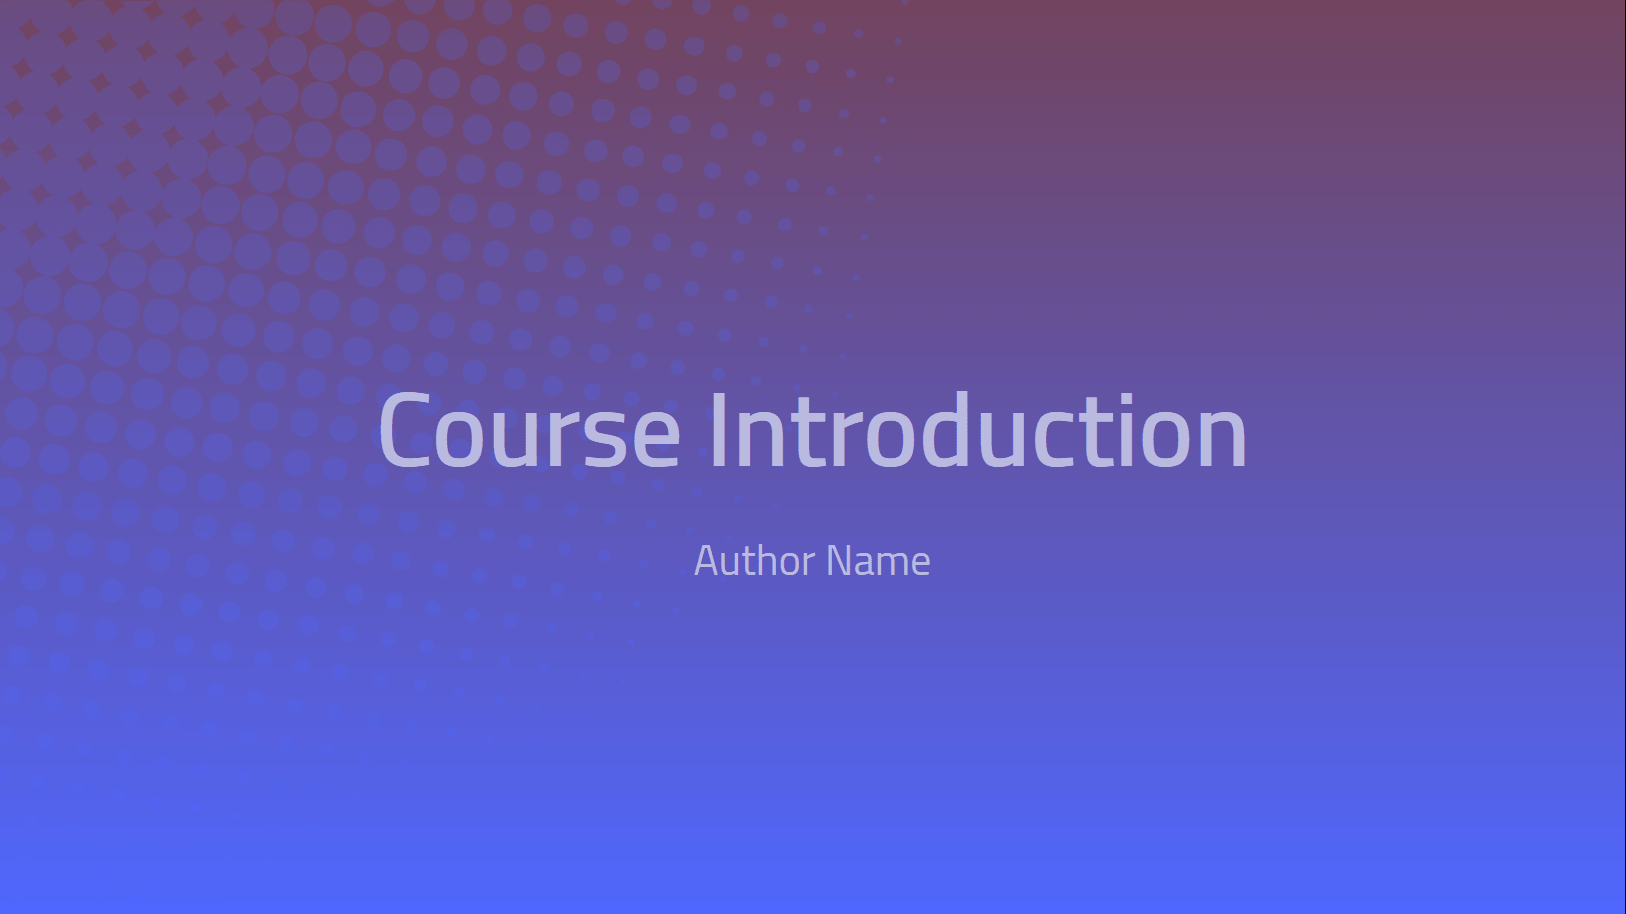 Course Introduction Template